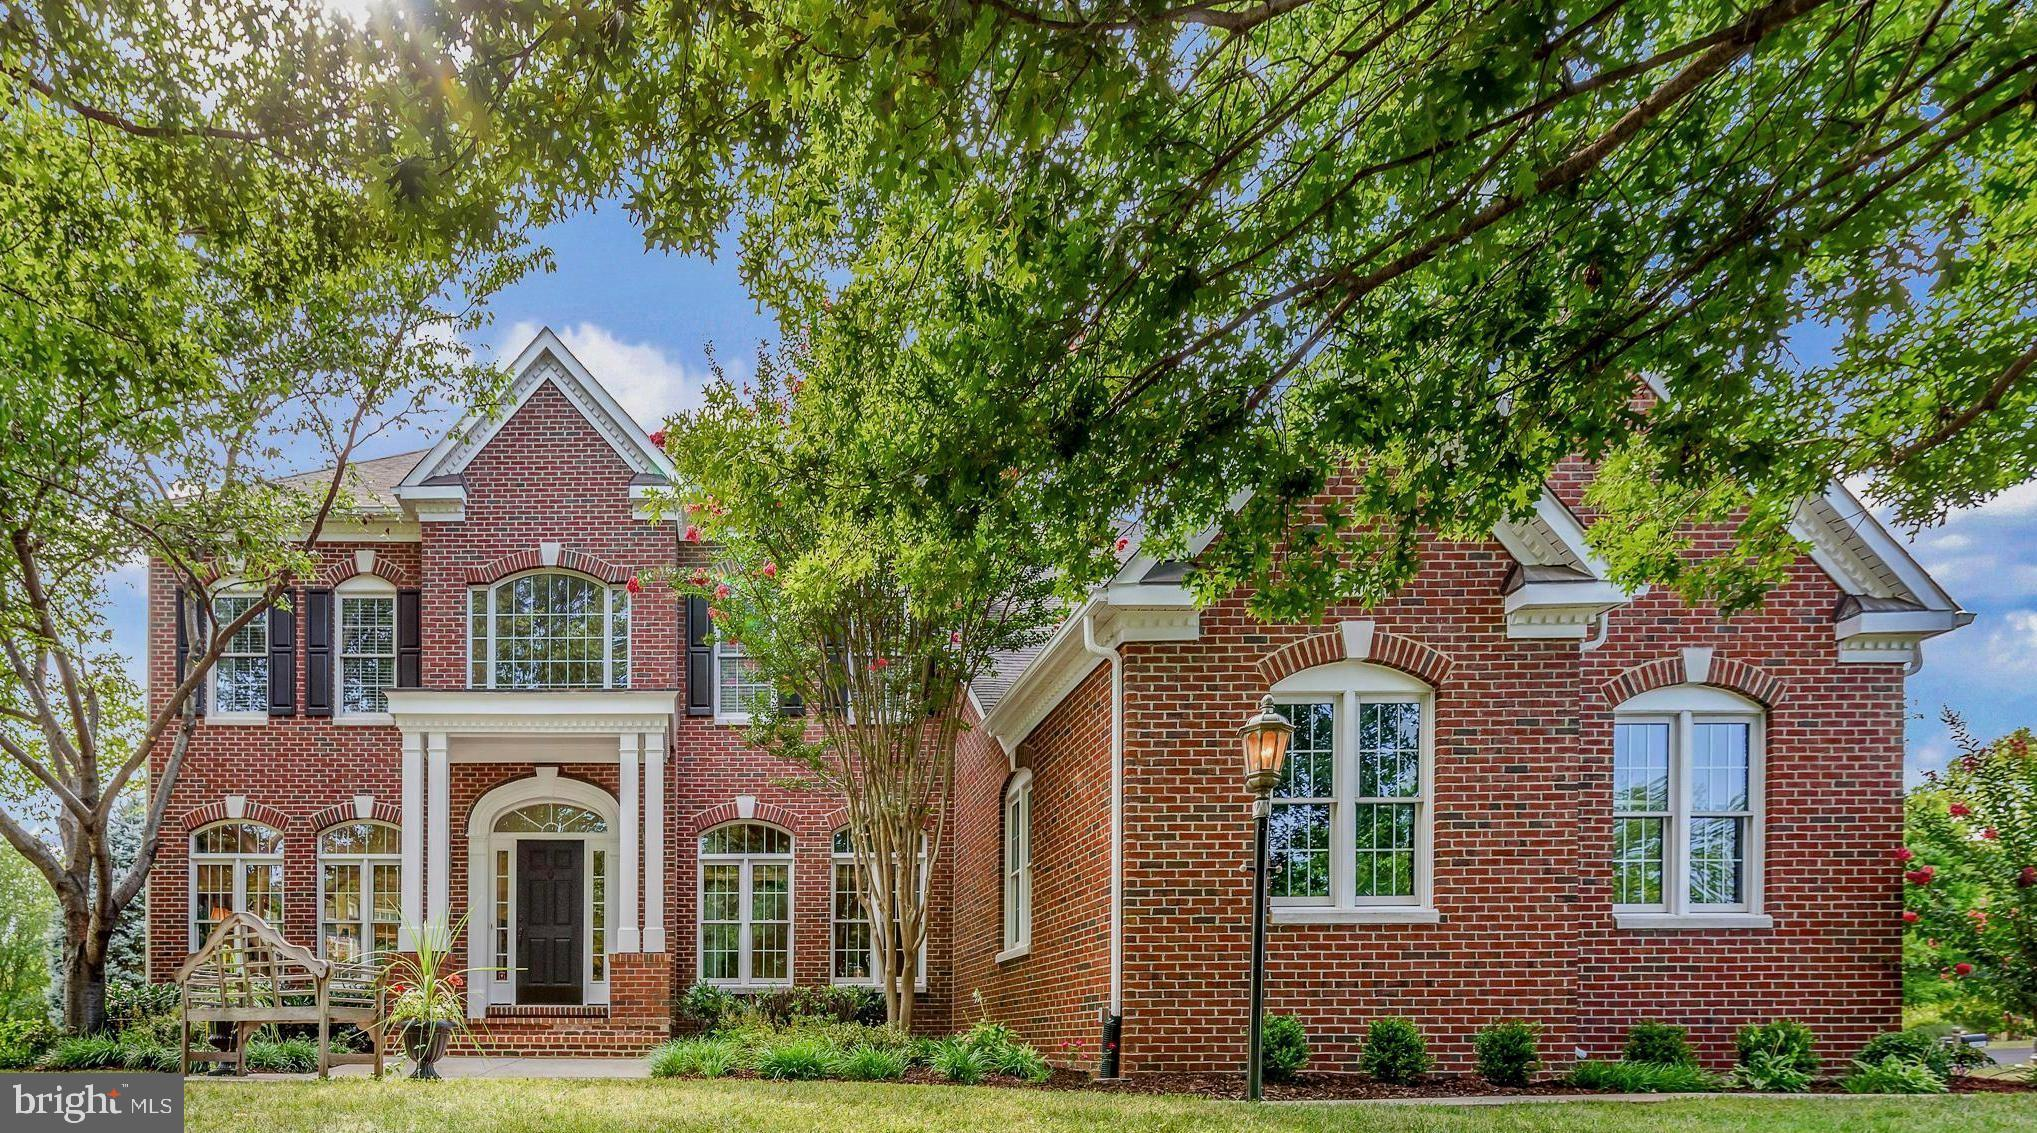 Nestled in the heart of old Ashburn, you'll find this Winchester spec home in the sought after community of Ashburn Station...Builder upgrades throughout!   Step inside this elegant, light filled, and spacious home featuring over 6000 square feet of finished living space on three levels.  The  bright and lightfilled two story foyer opens to a library/office with built-in floor to ceiling maple cabinets/bookshelves, as well as the formal living and dining room, each with floor to ceiling windows.  The dining room leads to a large kitchen, perfect for the family/ chef that likes to cook...featuring a large center island with gas cooktop, beverage station, under the counter and glass cabinet lighting, large walk-in pantry and dining area.  The light filled sunroom is just off of the kitchen which leads to a large deck, perfect for entertaining, relaxing and watching the sunset.  Step into the two story family room adjacent to the kitchen, boasting a  full wall of french doors which also open to the deck area and a two story stone fireplace flanked by additional windows on each side.  A second staircase leads you to the master suite, three large bedrooms with their own bathrooms, as well as a desk/computer station.  The master suite and bathroom are also lightfilled with south and west facing windows.  The master suite features a 10 foot tray ceiling and a walk-in closet.  The spacious masterbath features a large walk-in shower, jacuzzi bathtub and his and her vanities with lots of storage and counterspace.  Two of the bedrooms share a Jack and Jill bathroom.  The 3rd bedroom/ Princess suite features a full bathroom.  The basement area is over 1600 finished square feet featuring walk-up stairs to the side yard, a large family room area, billiards area, wet bar, exercise room, project room, office/guestroom with a walk-in closet and attached full bath,  2 extra large closets, and an unfinished storage room with a full workbench.  The 3 car side load garage features built